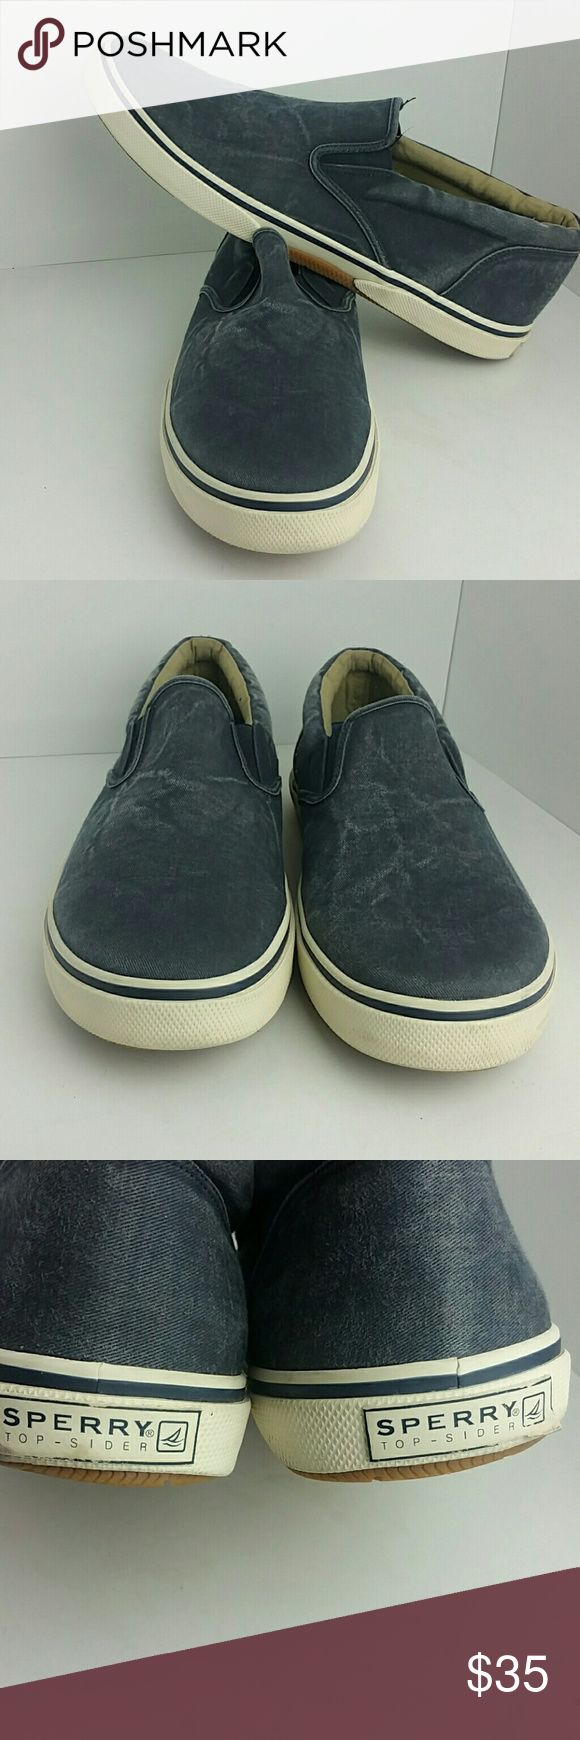 SPERRY TOP-SIDER MEN'S SHOES VERY CLEAN INSIDE-OUT   SKE # TKO Sperry Top-Sider Shoes Sneakers